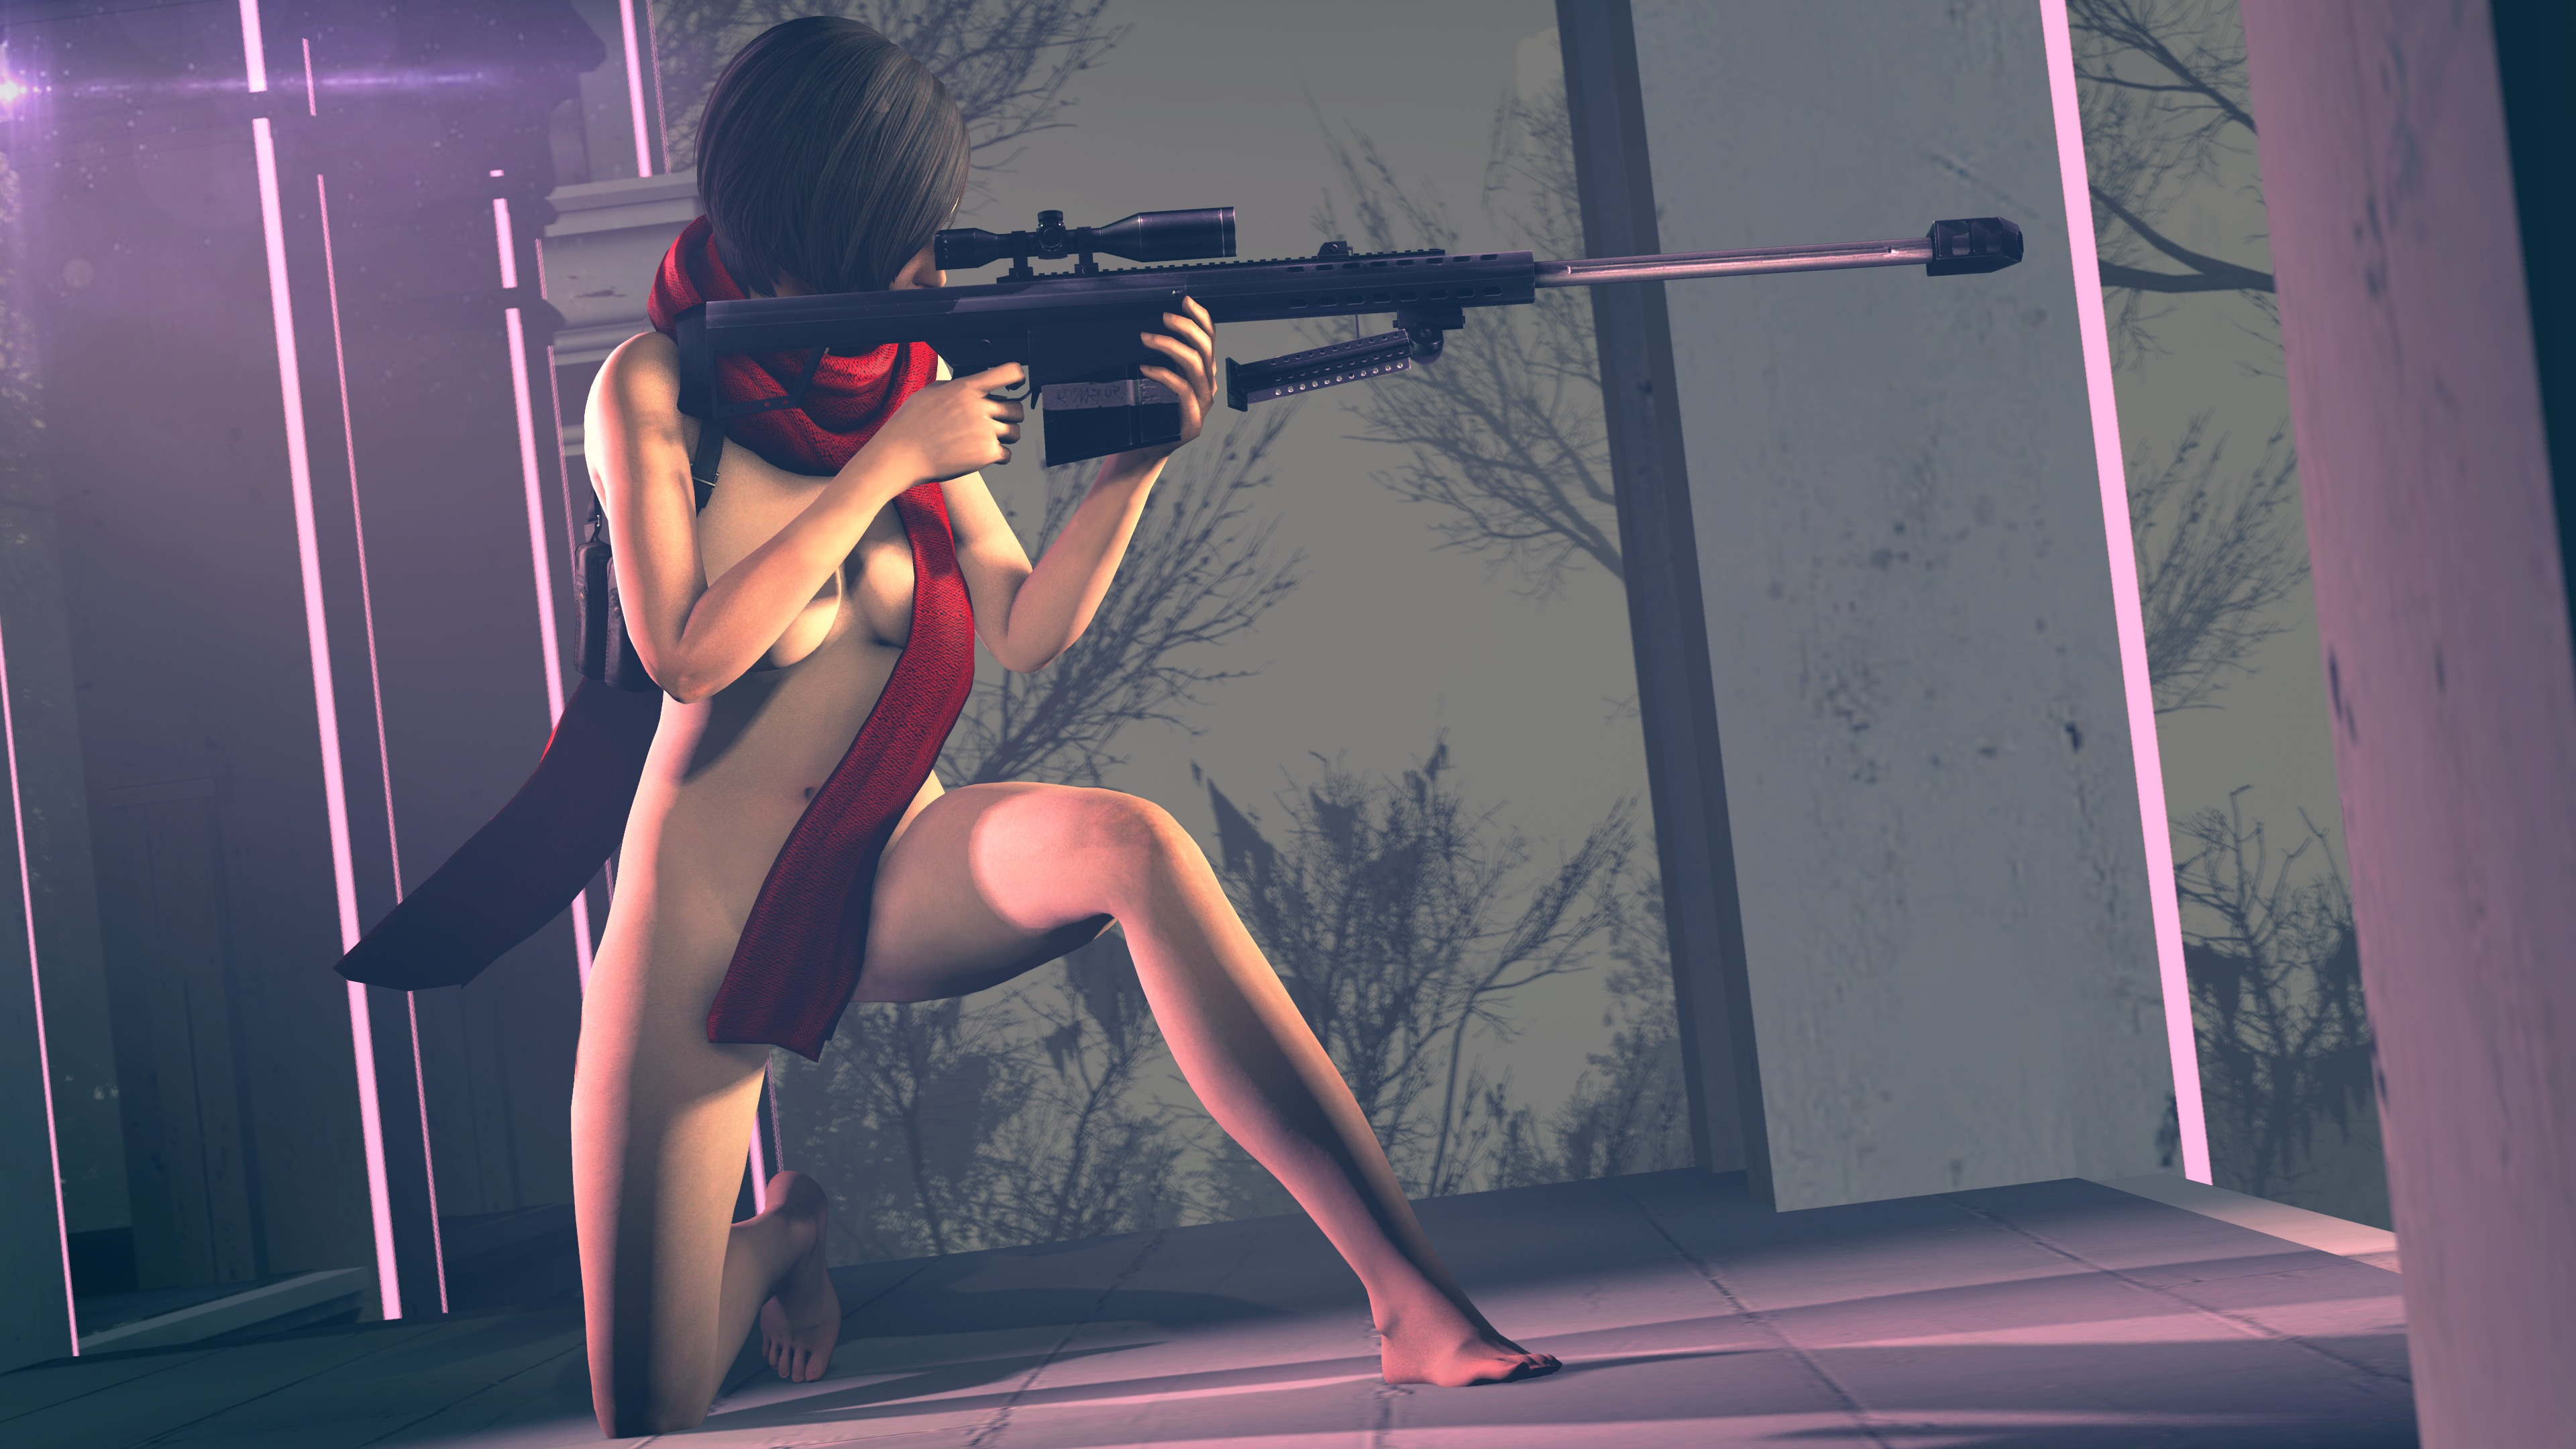 Resident evil 5 nuds girls pic exposed pictures